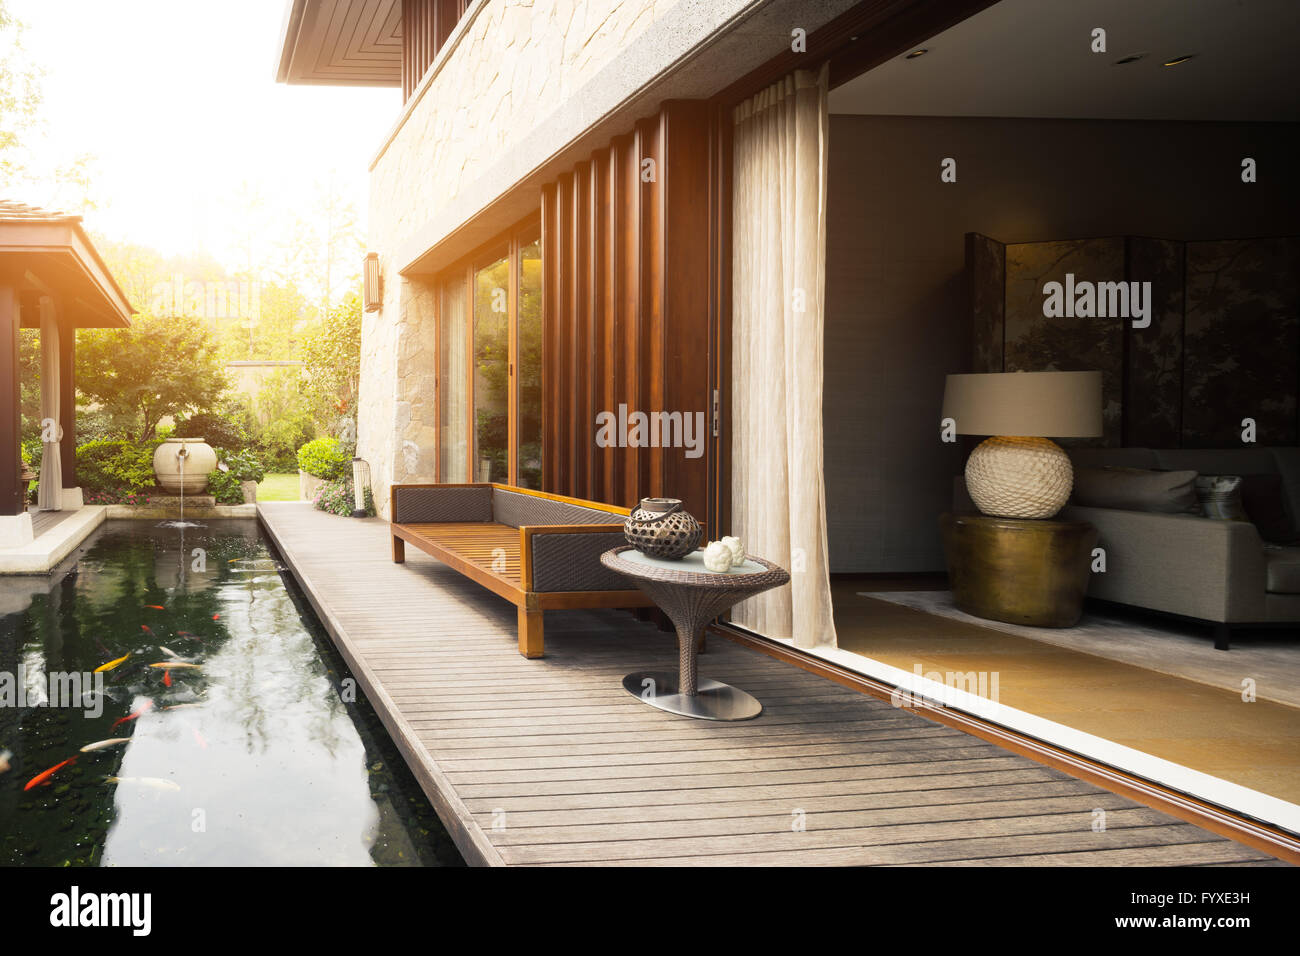 Home Design Et Deco design and deco in rest place outside house stock photo